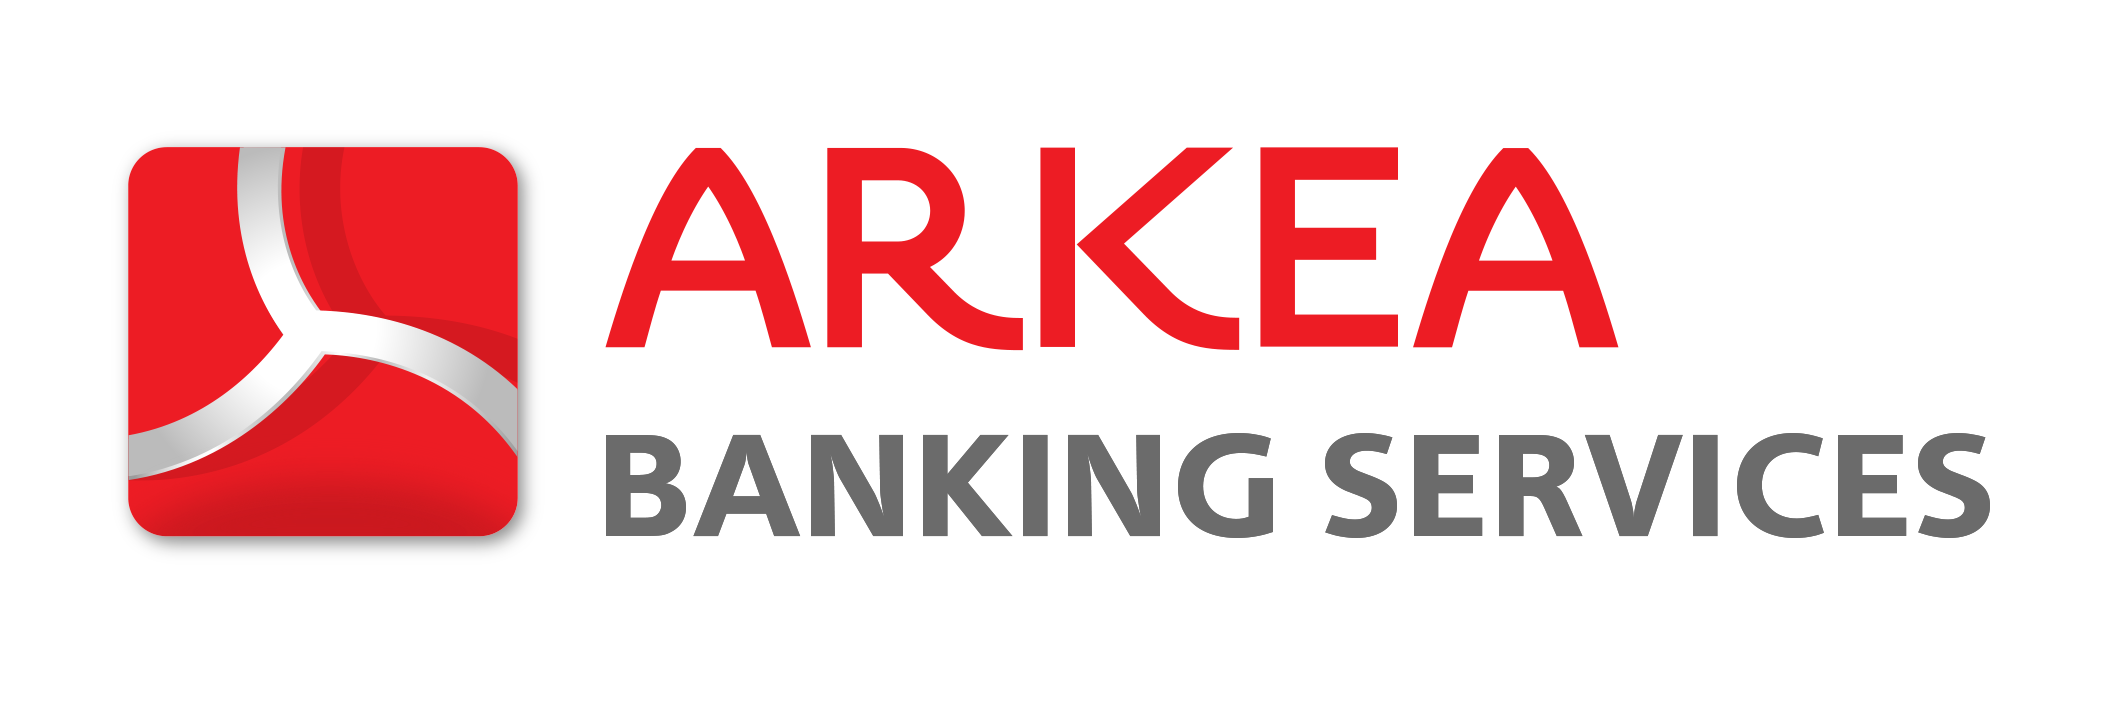 Arkéa Banking Services